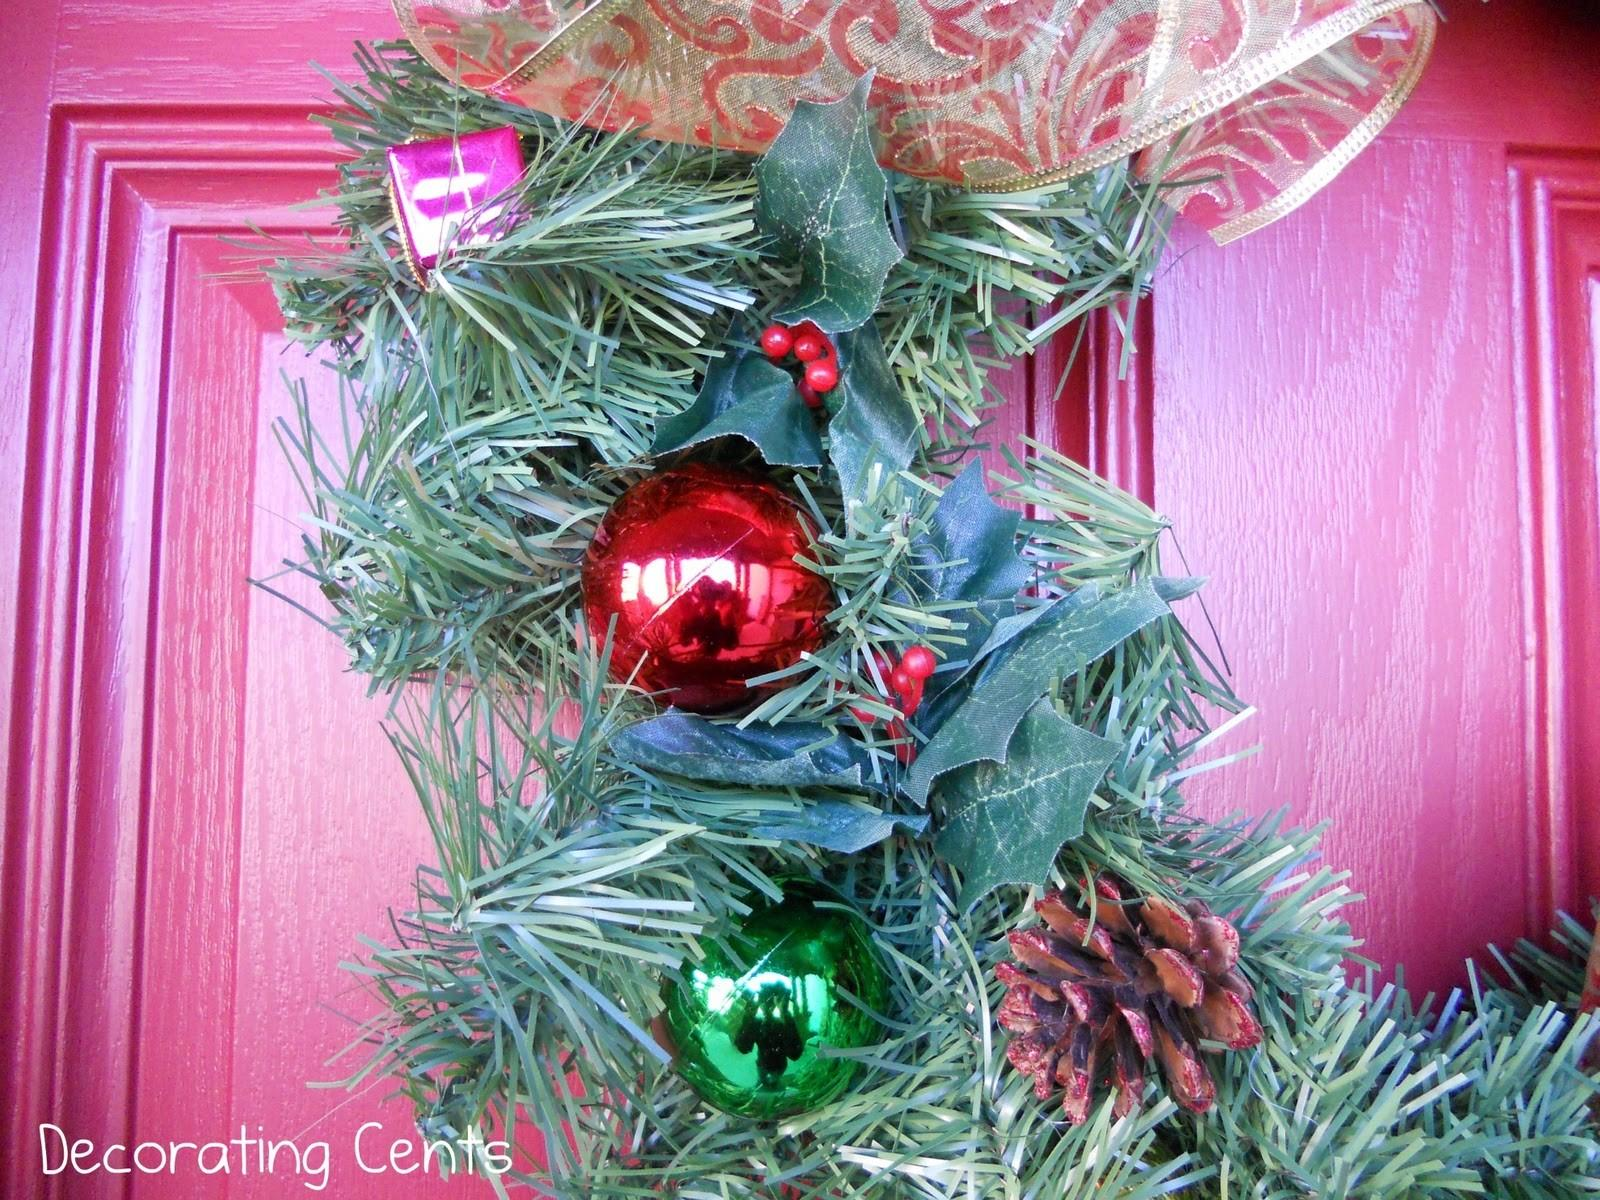 Decorating Cents Ornament Wreath